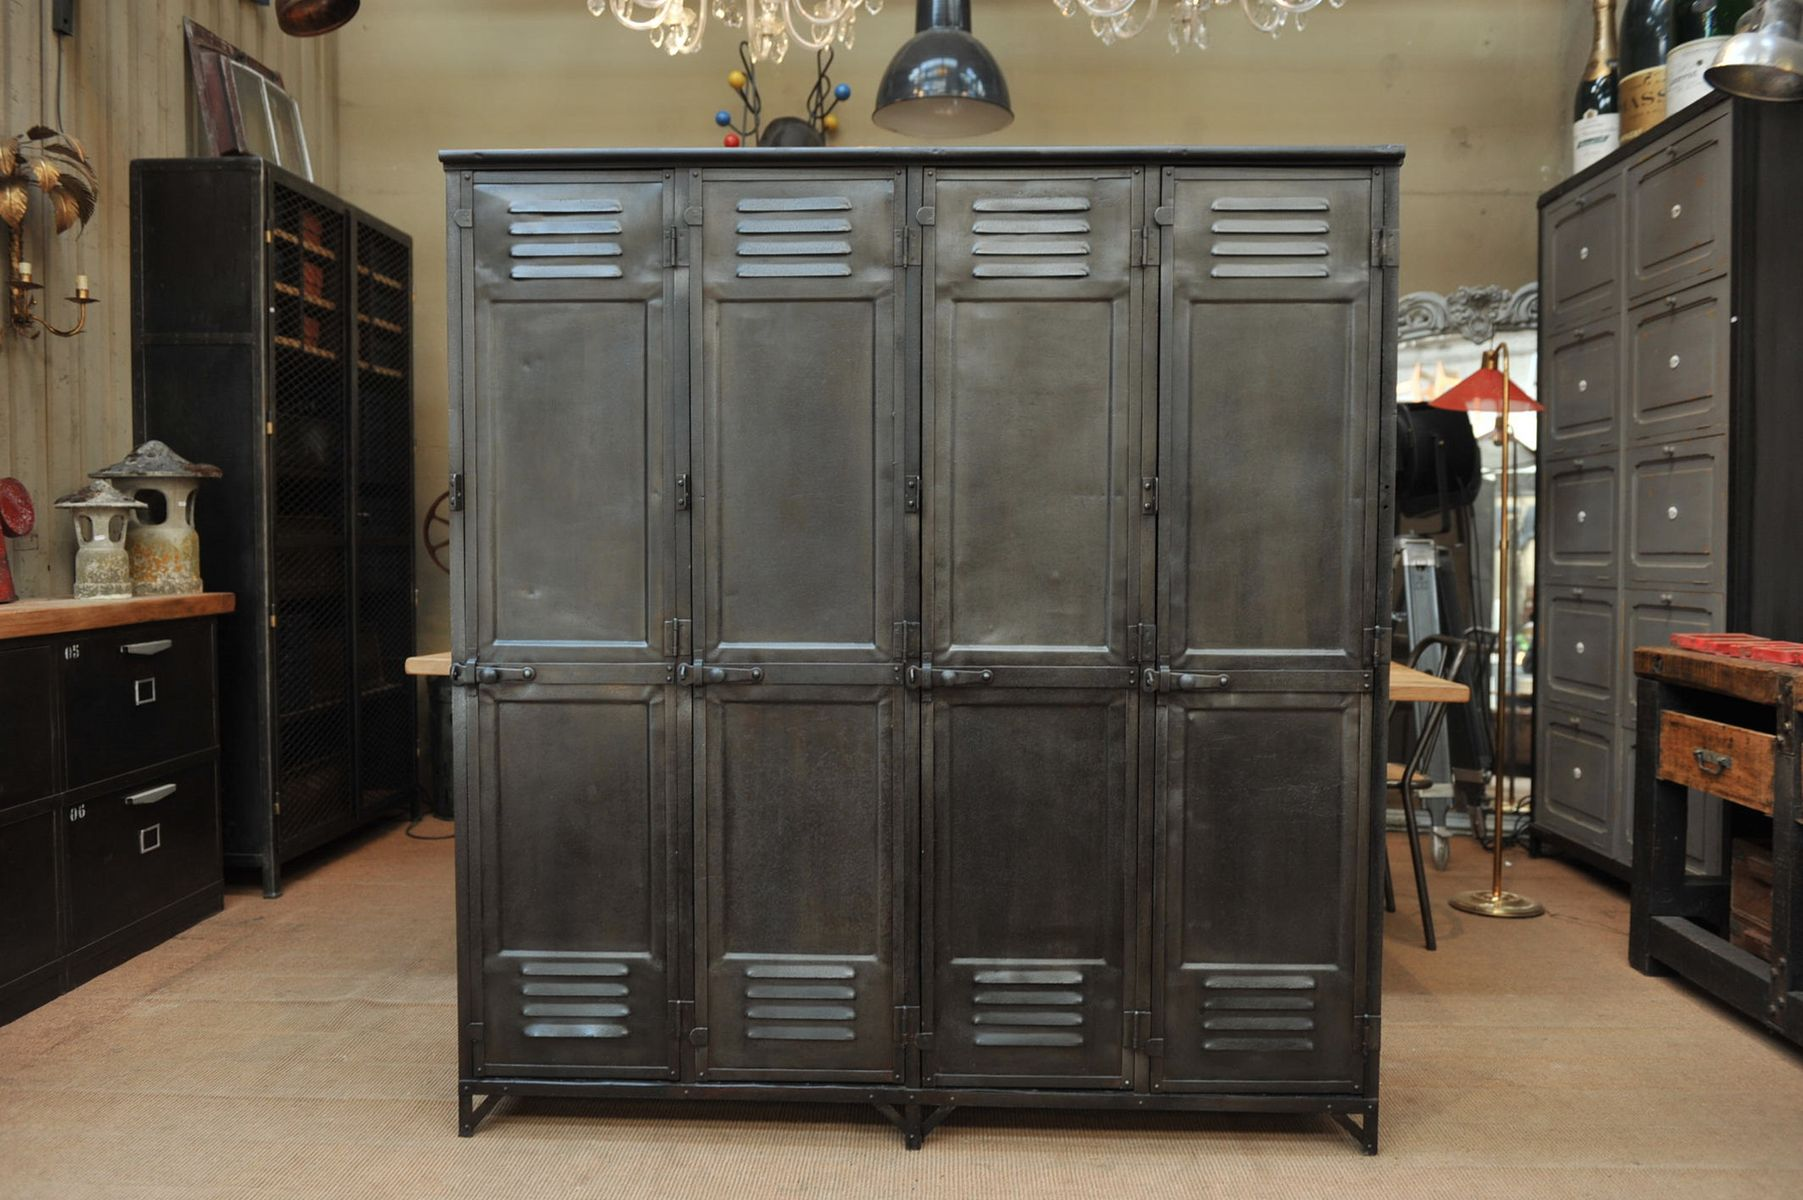 vintage metall spind reihe 1930er bei pamono kaufen. Black Bedroom Furniture Sets. Home Design Ideas